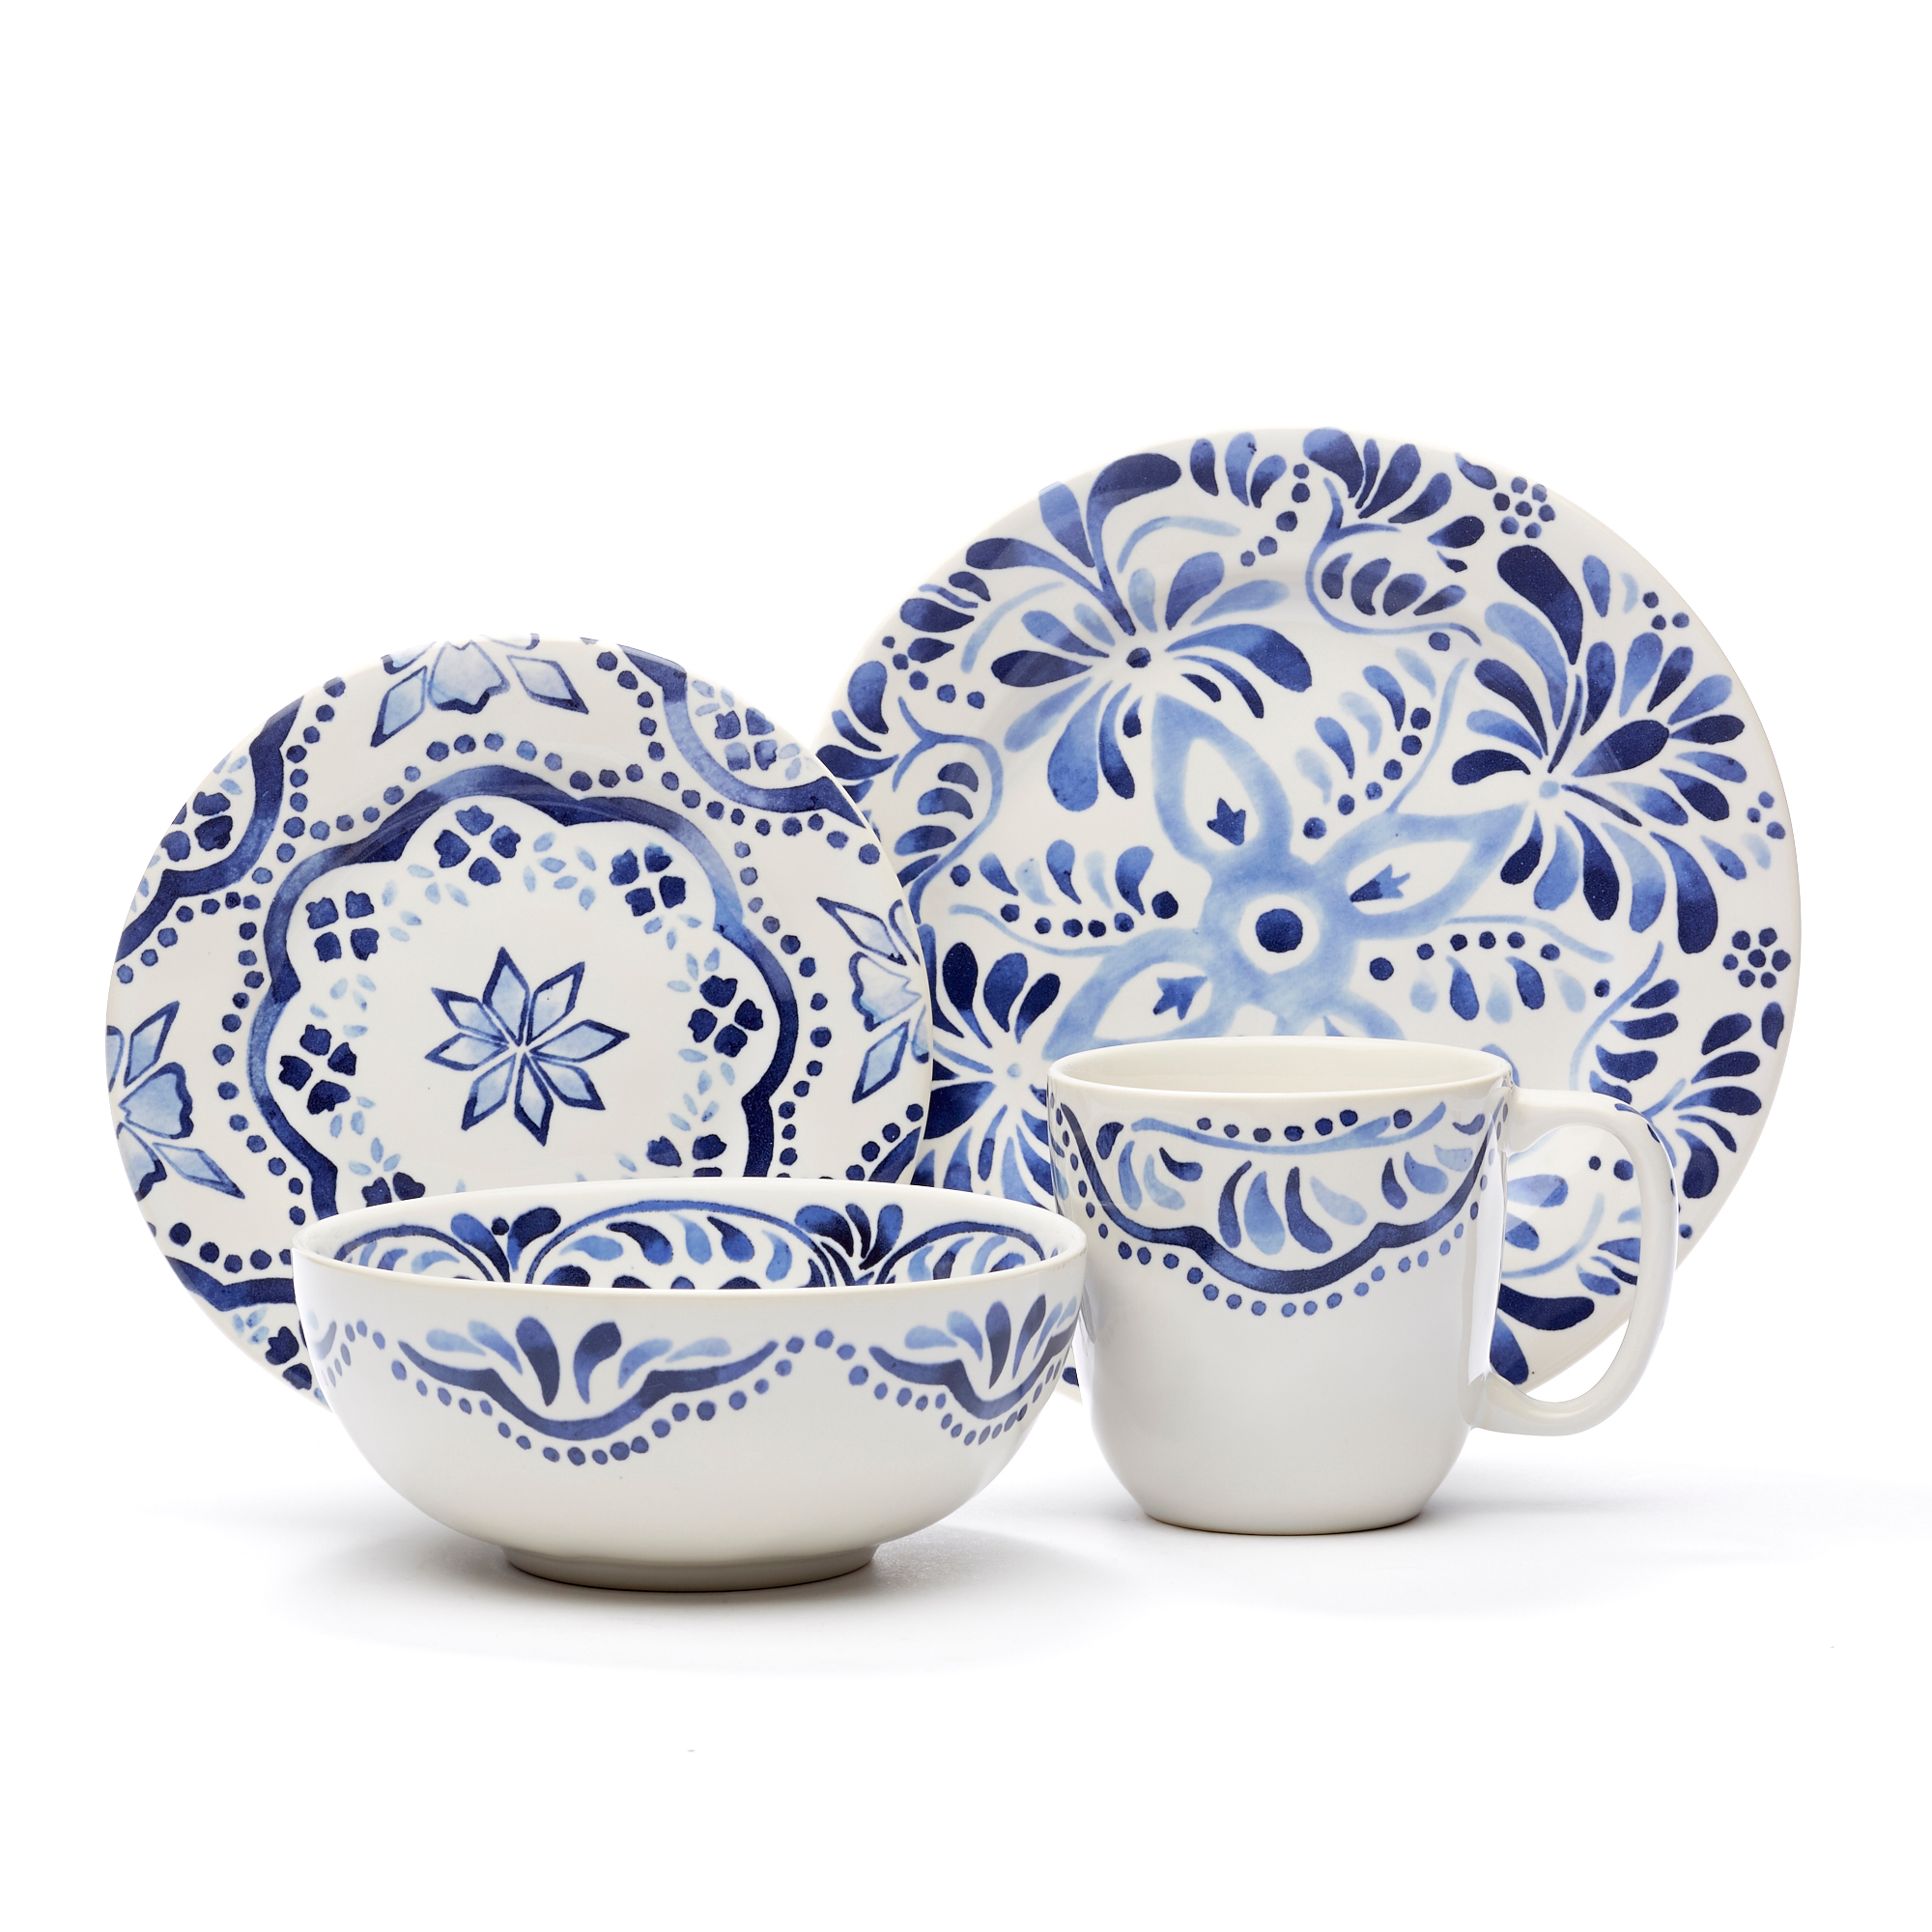 Juliska Iberian Journey Dinnerware, Indigo